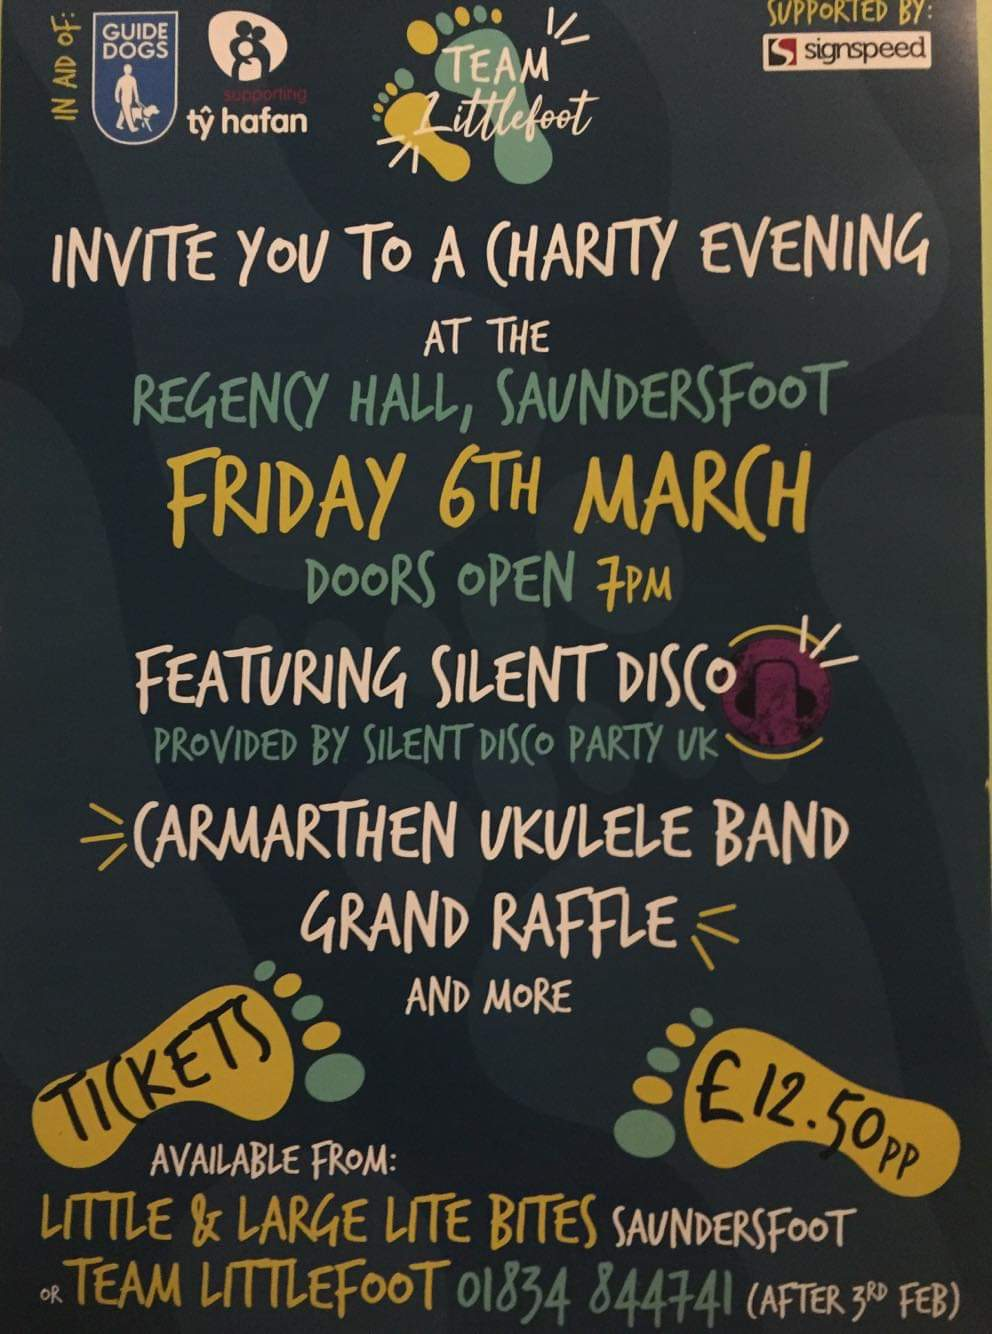 6th_march_charity_evening.jpeg